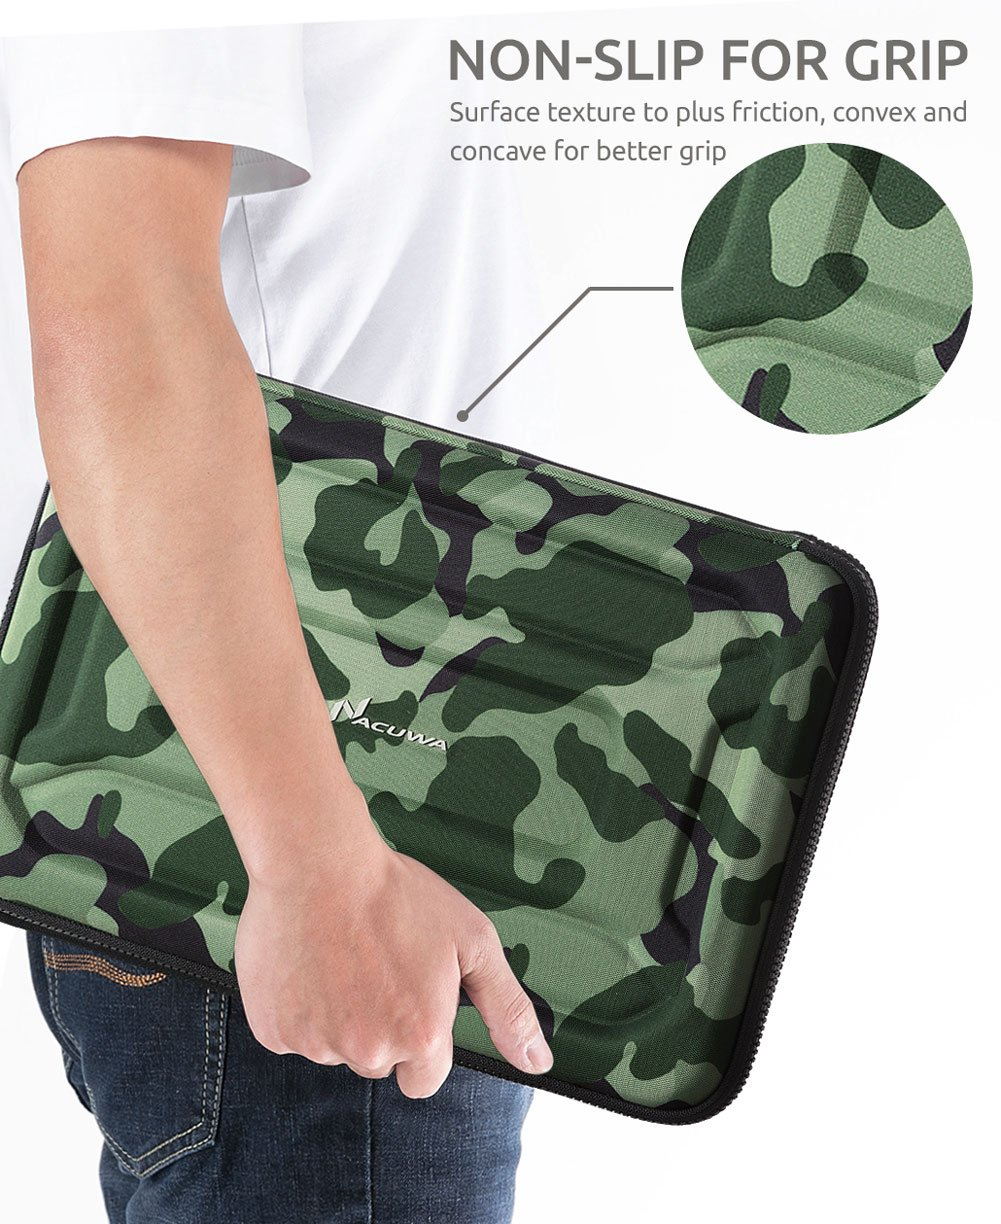 Protective Laptop Case: 13 - 13.3 Inch Computer Carrying Sleeve for 2018 New Macbook Air, Pro, Microsoft Surface or Chromebook - Padded, Waterproof and Shockproof Hard Lap Top Cover Cases - Camo by Nacuwa (Image #7)